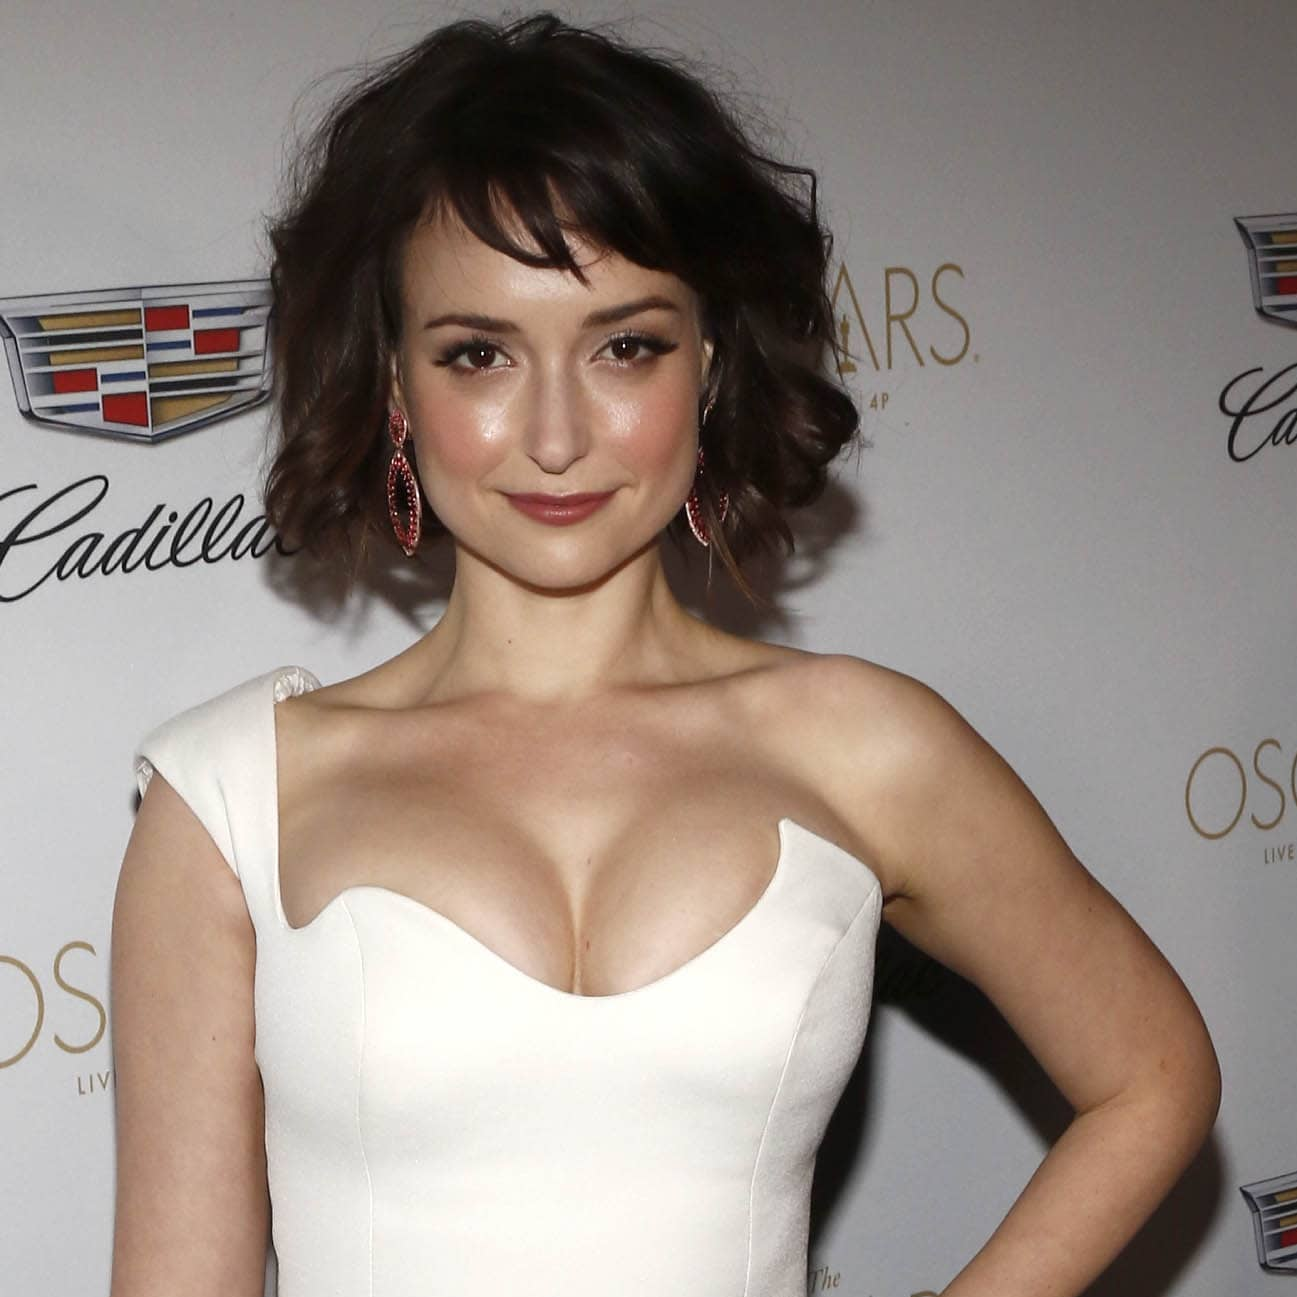 Milana Vayntrub has been bombarded with messages about the size of her boobs